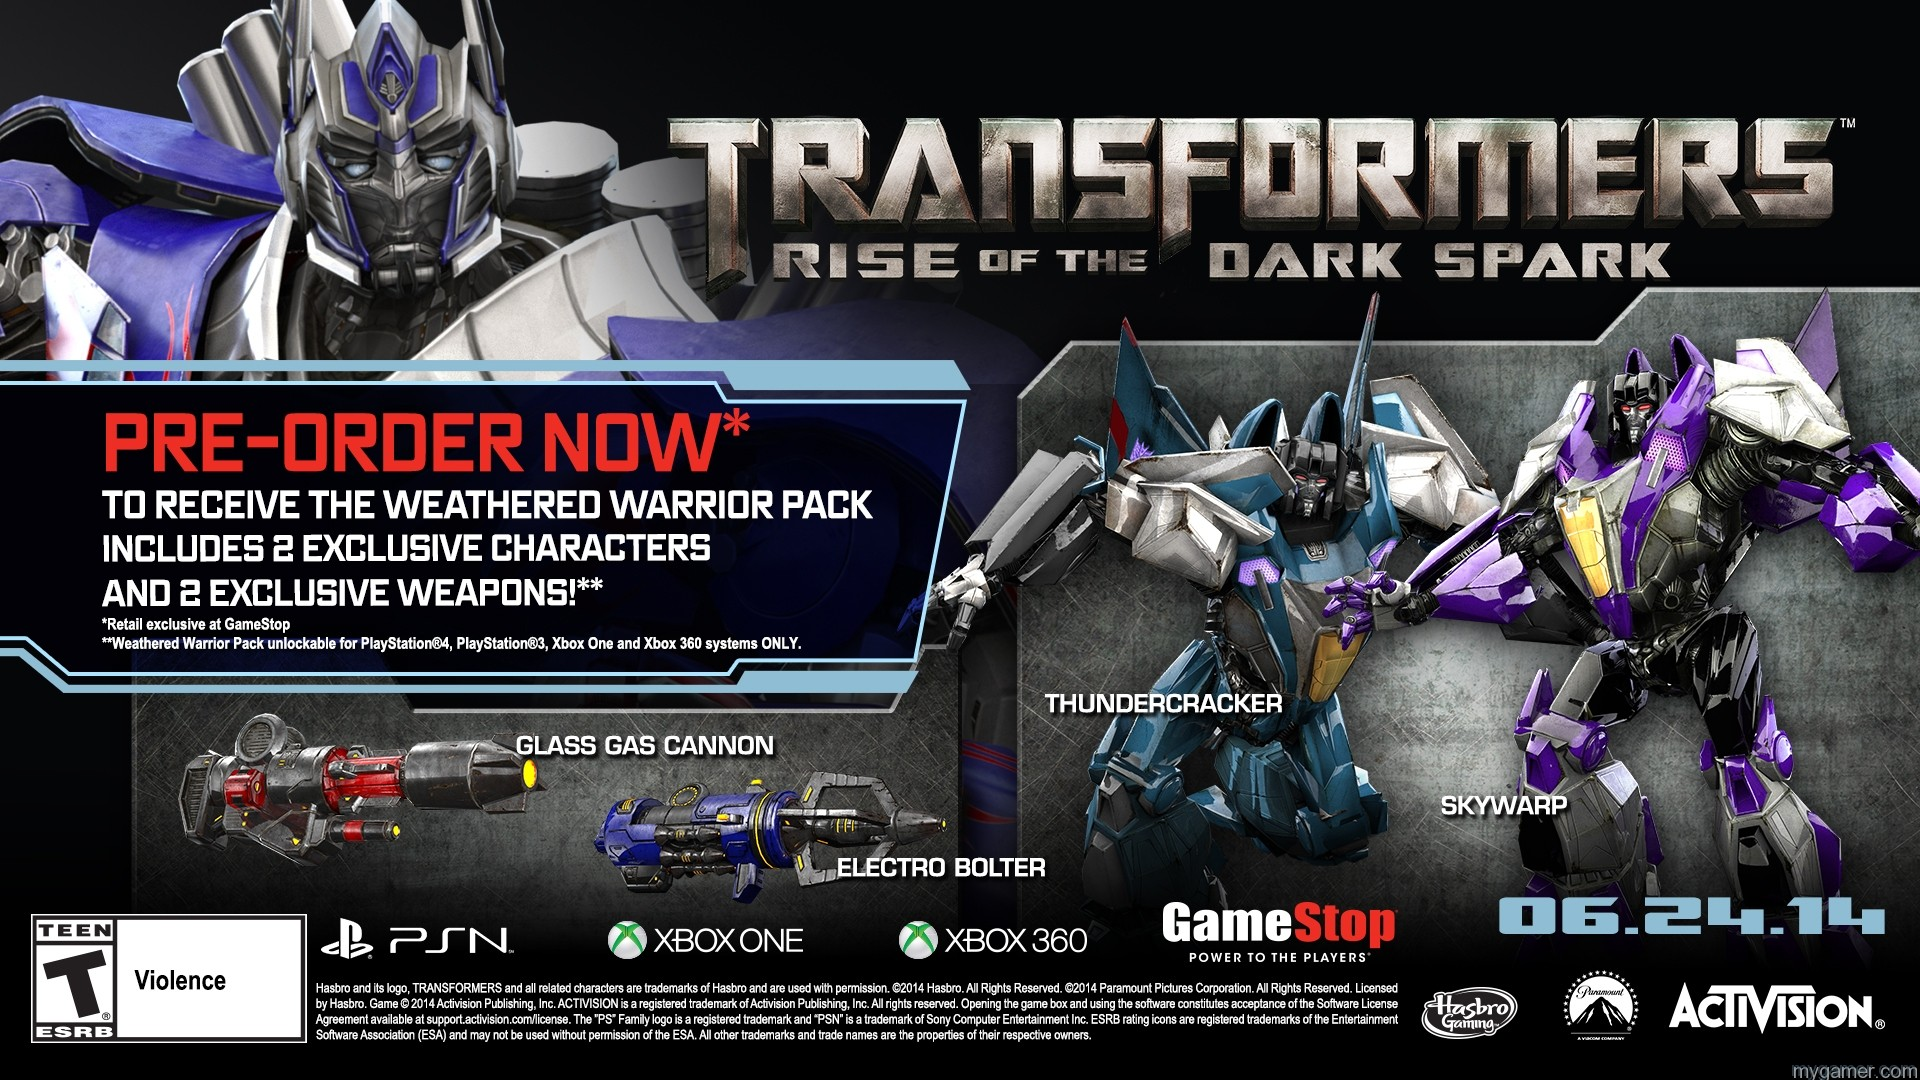 Gamestop Offering Exclusive Content with Transformers: Rise of the Dark Spark Pre-Order Gamestop Offering Exclusive Content with Transformers: Rise of the Dark Spark Pre-Order TFRotDS GameStop DLC